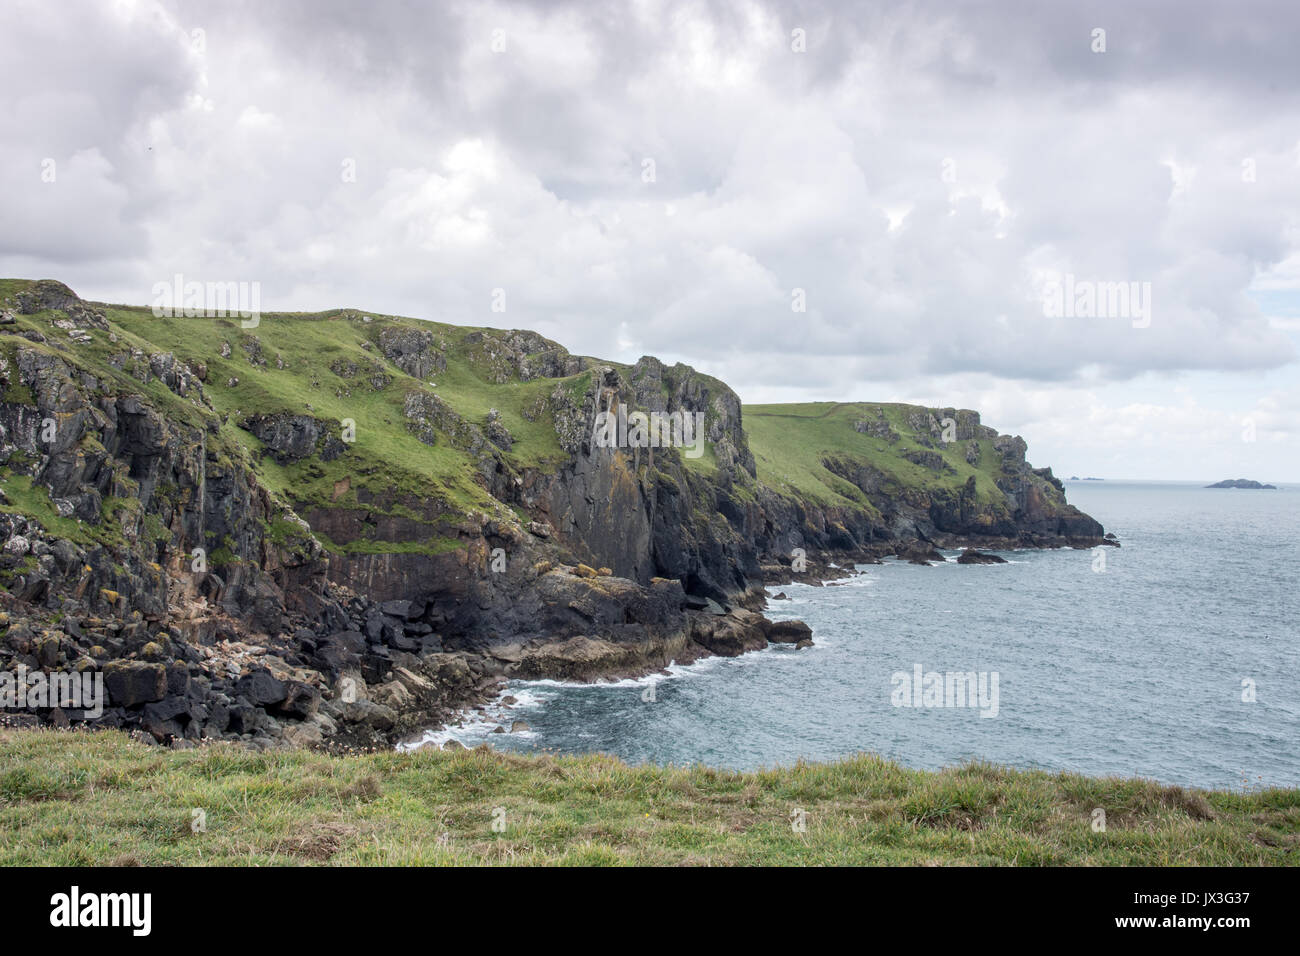 Pentire Point, North Cornwall, UK - Stock Image